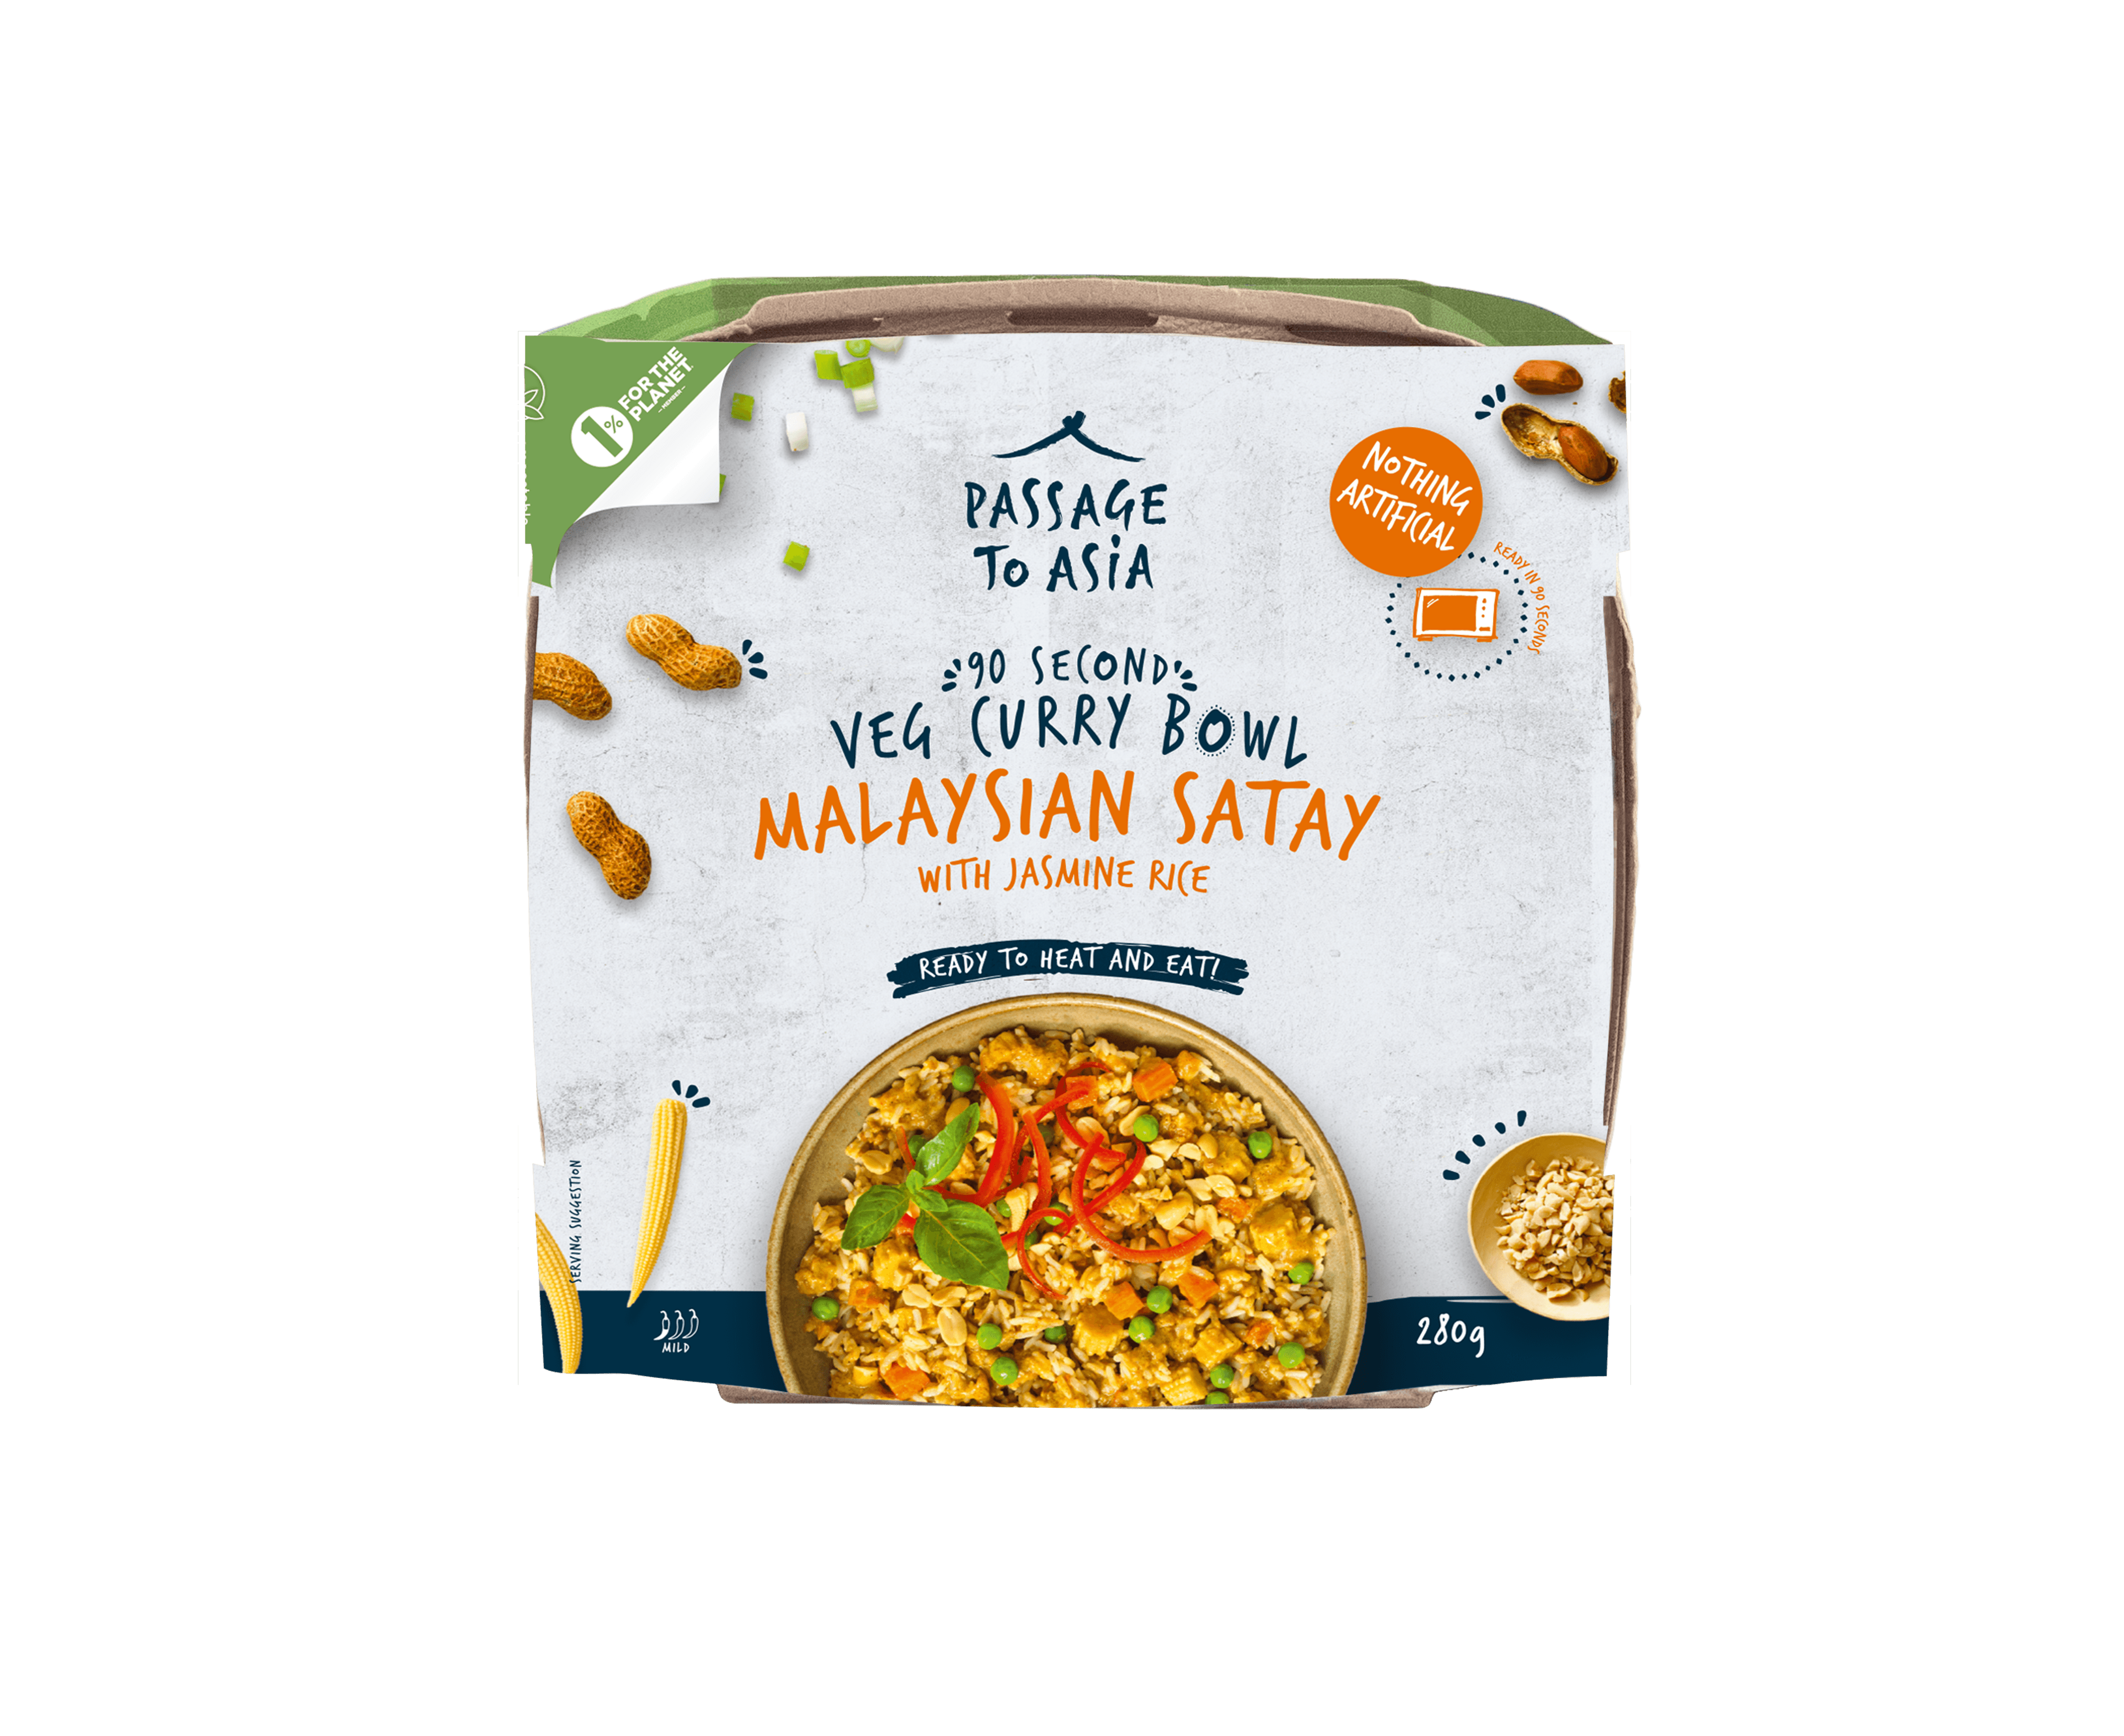 Malaysian Satay Curry Bowl from the Passage to Asia Veg Curry Bowls Range